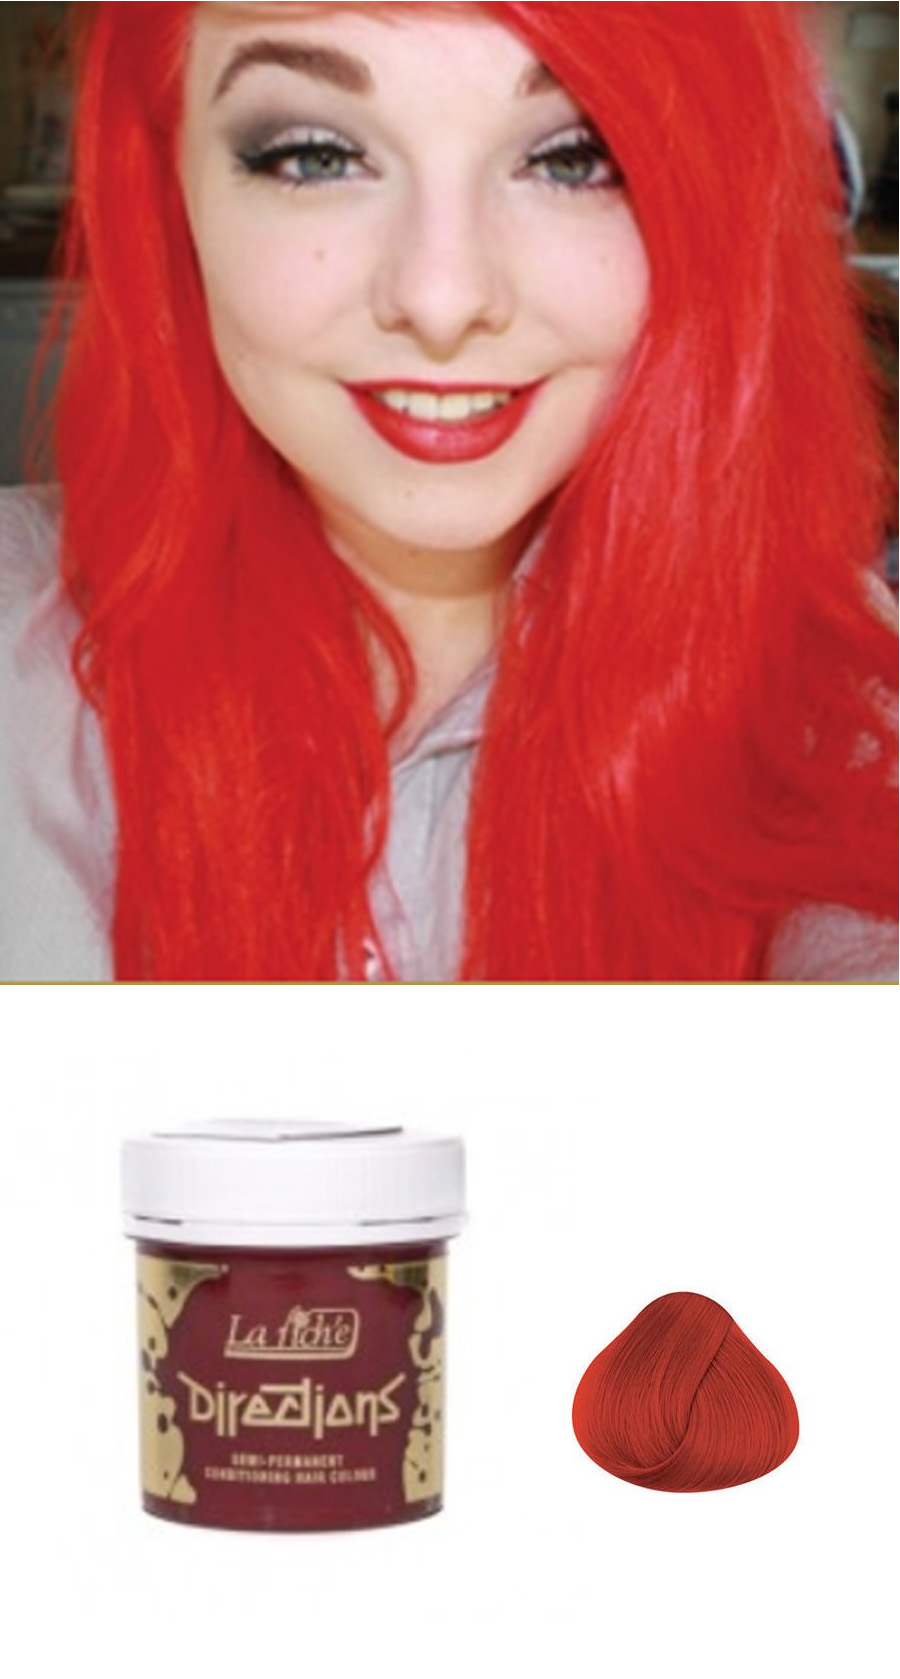 La Riche Directions Semi Permanent Hair Color Dye Coral Red My